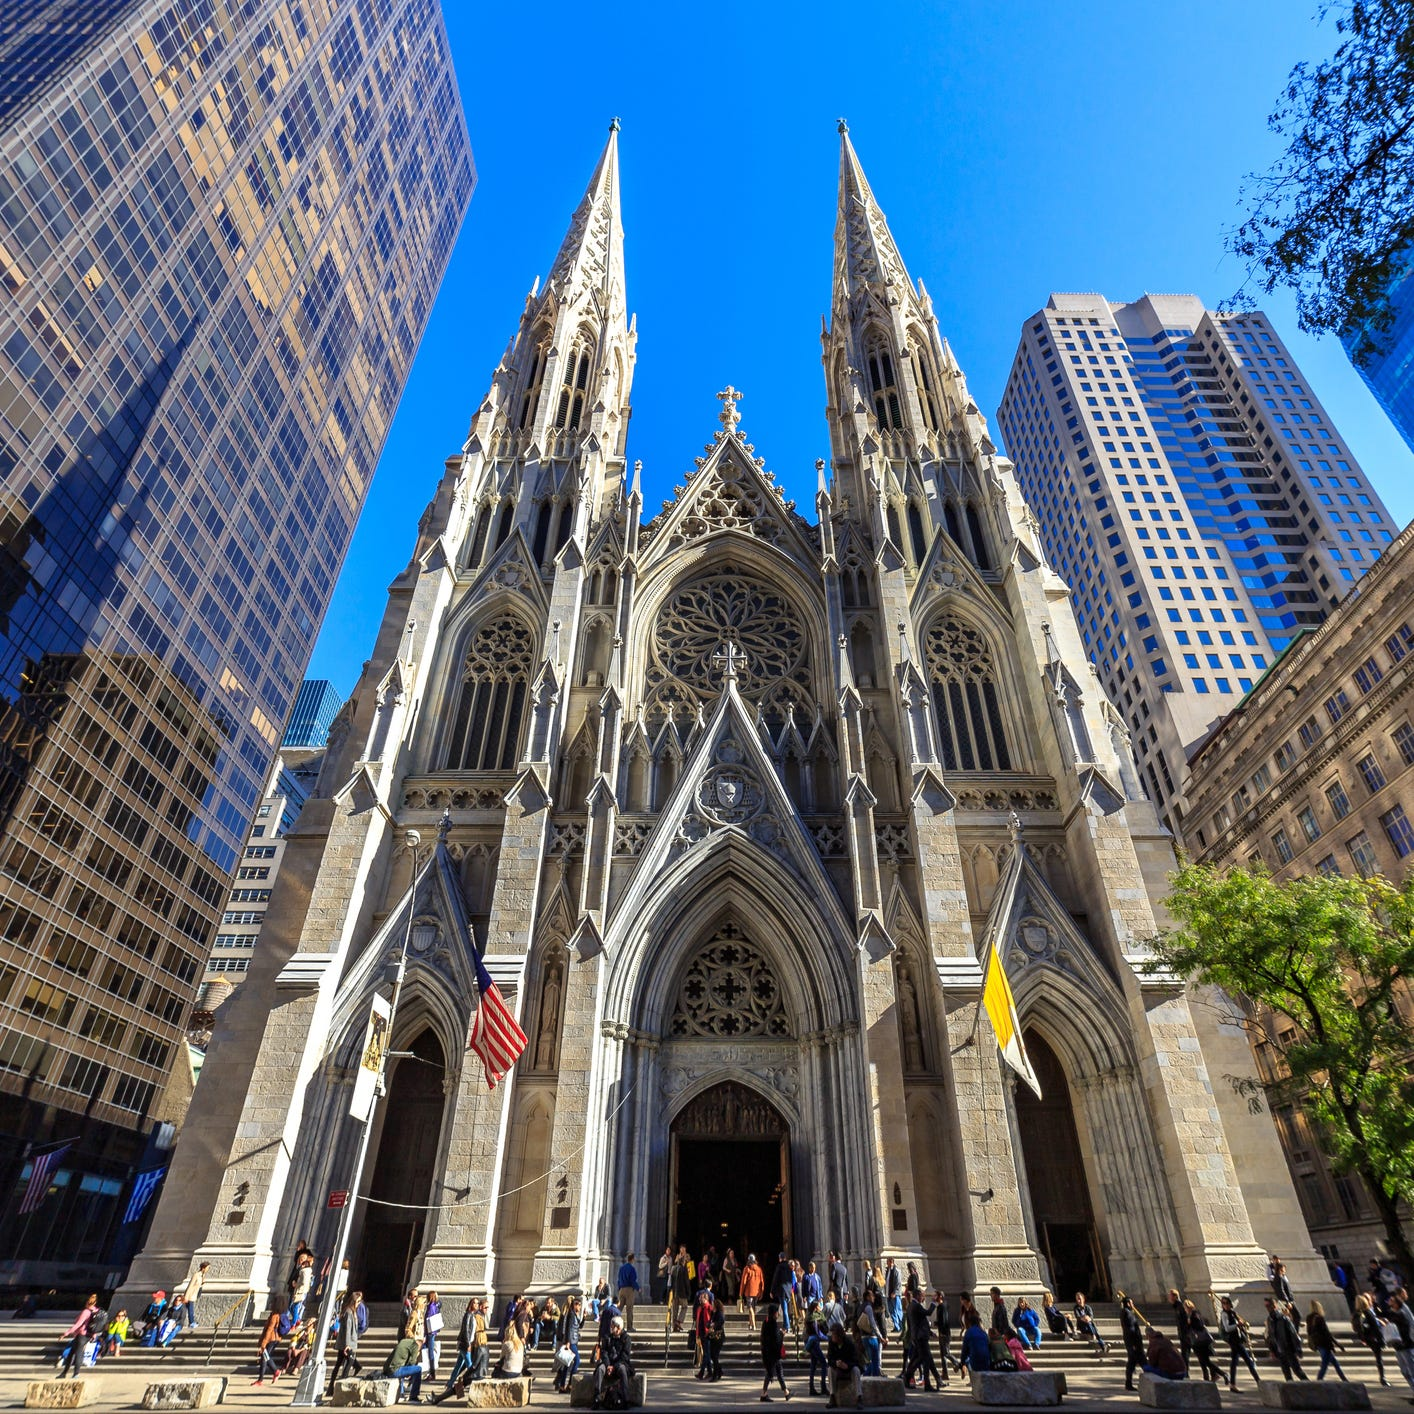 New Jersey man tries to bring gas cans into St. Patrick's Cathedral in NY, police say